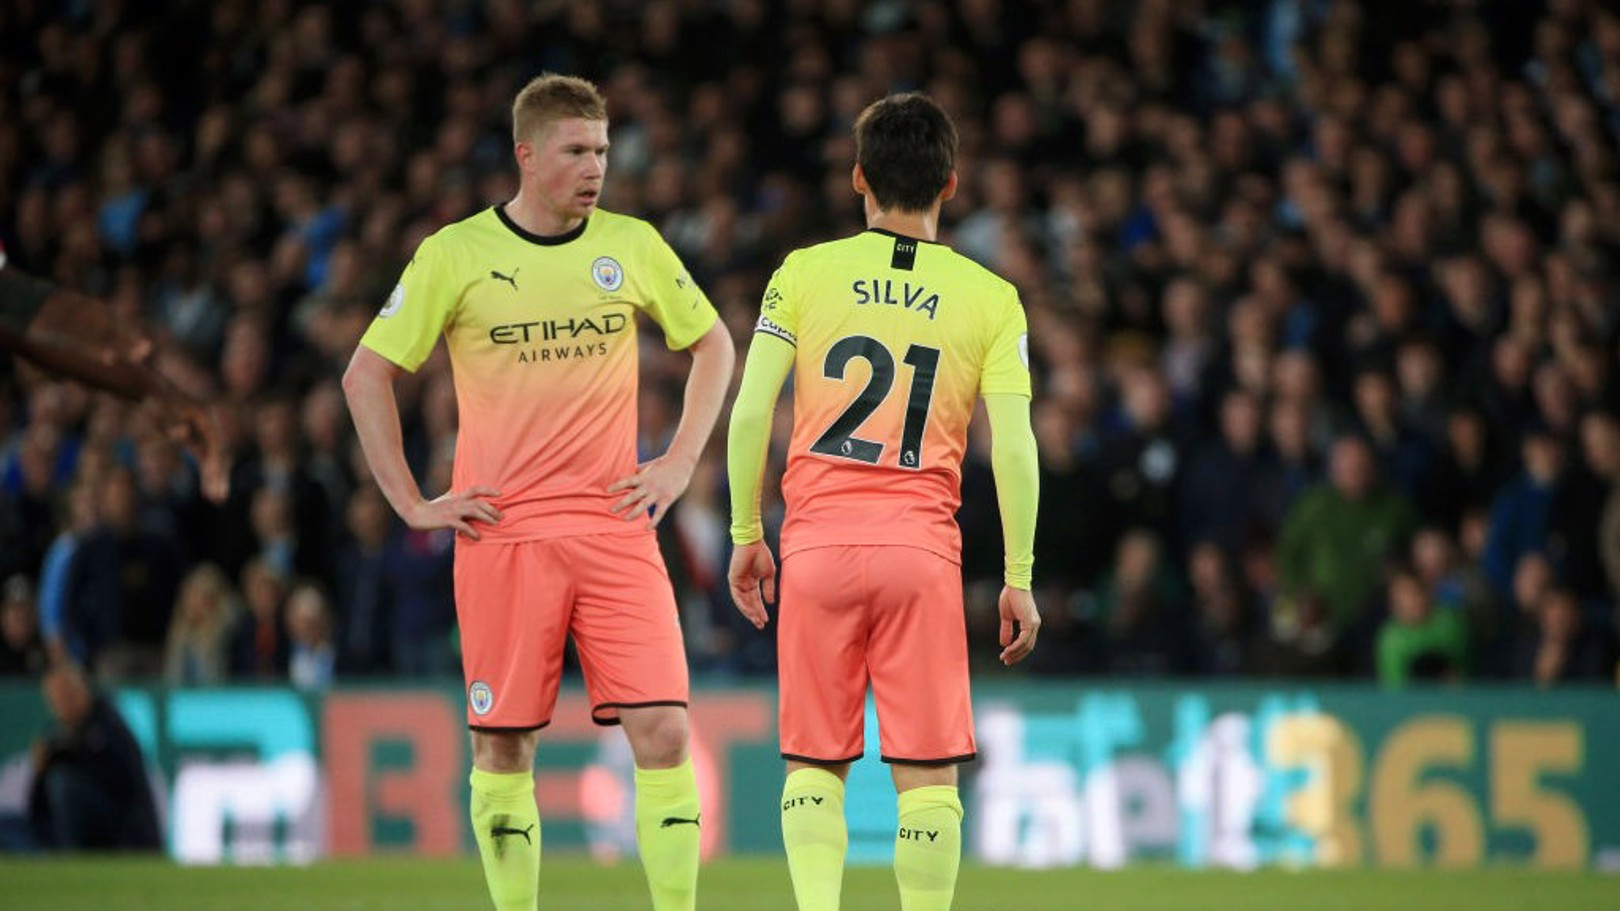 IN TANDEM: David Silva and Kevin De Bruyne.